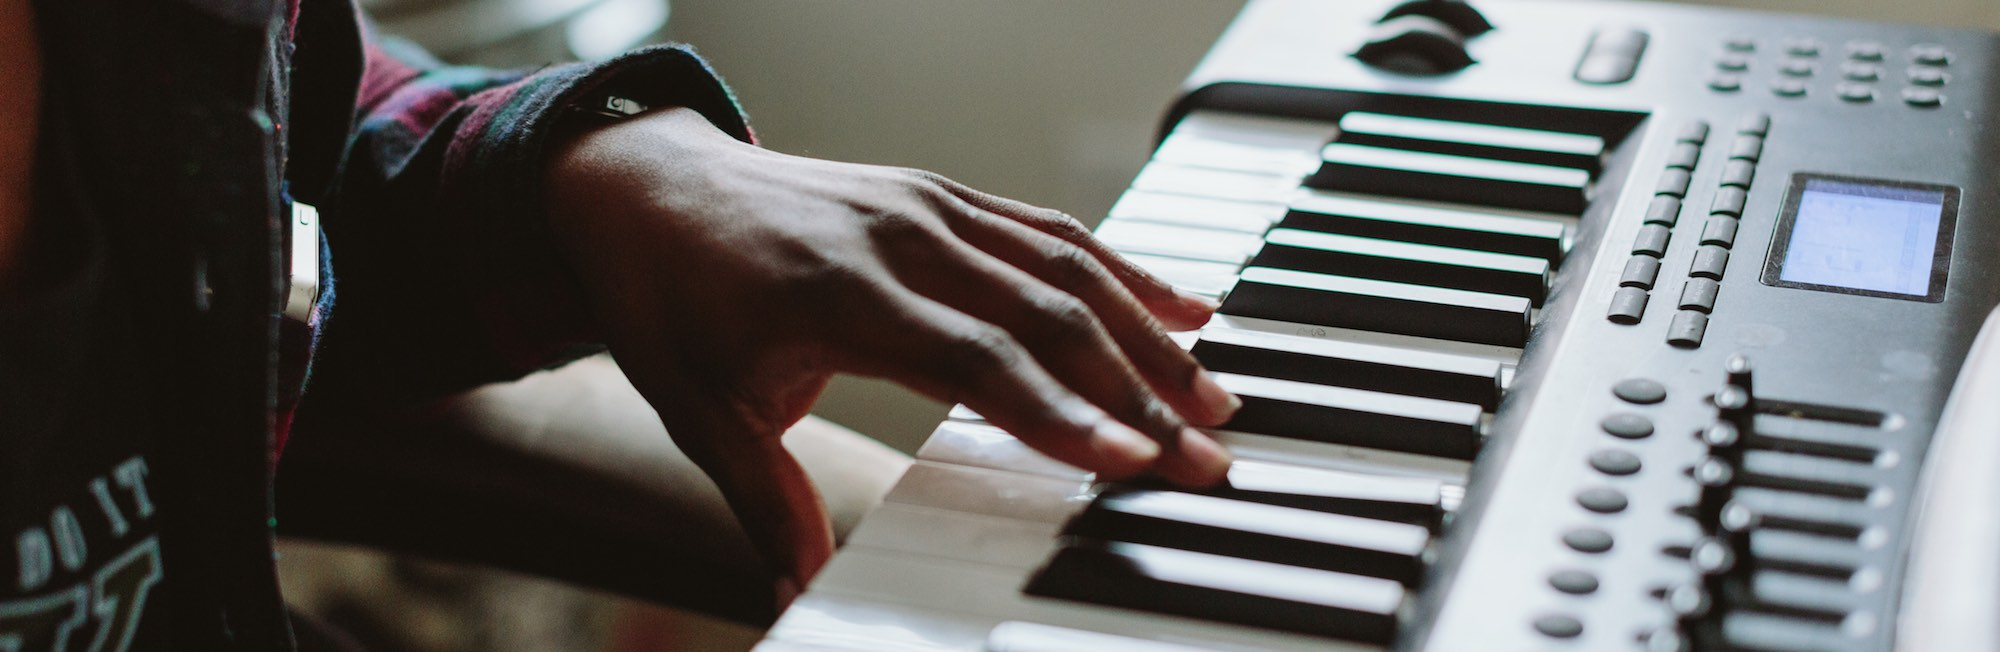 A photo of a left hand playing an F sharp with middle finger on an electric piano keyboard